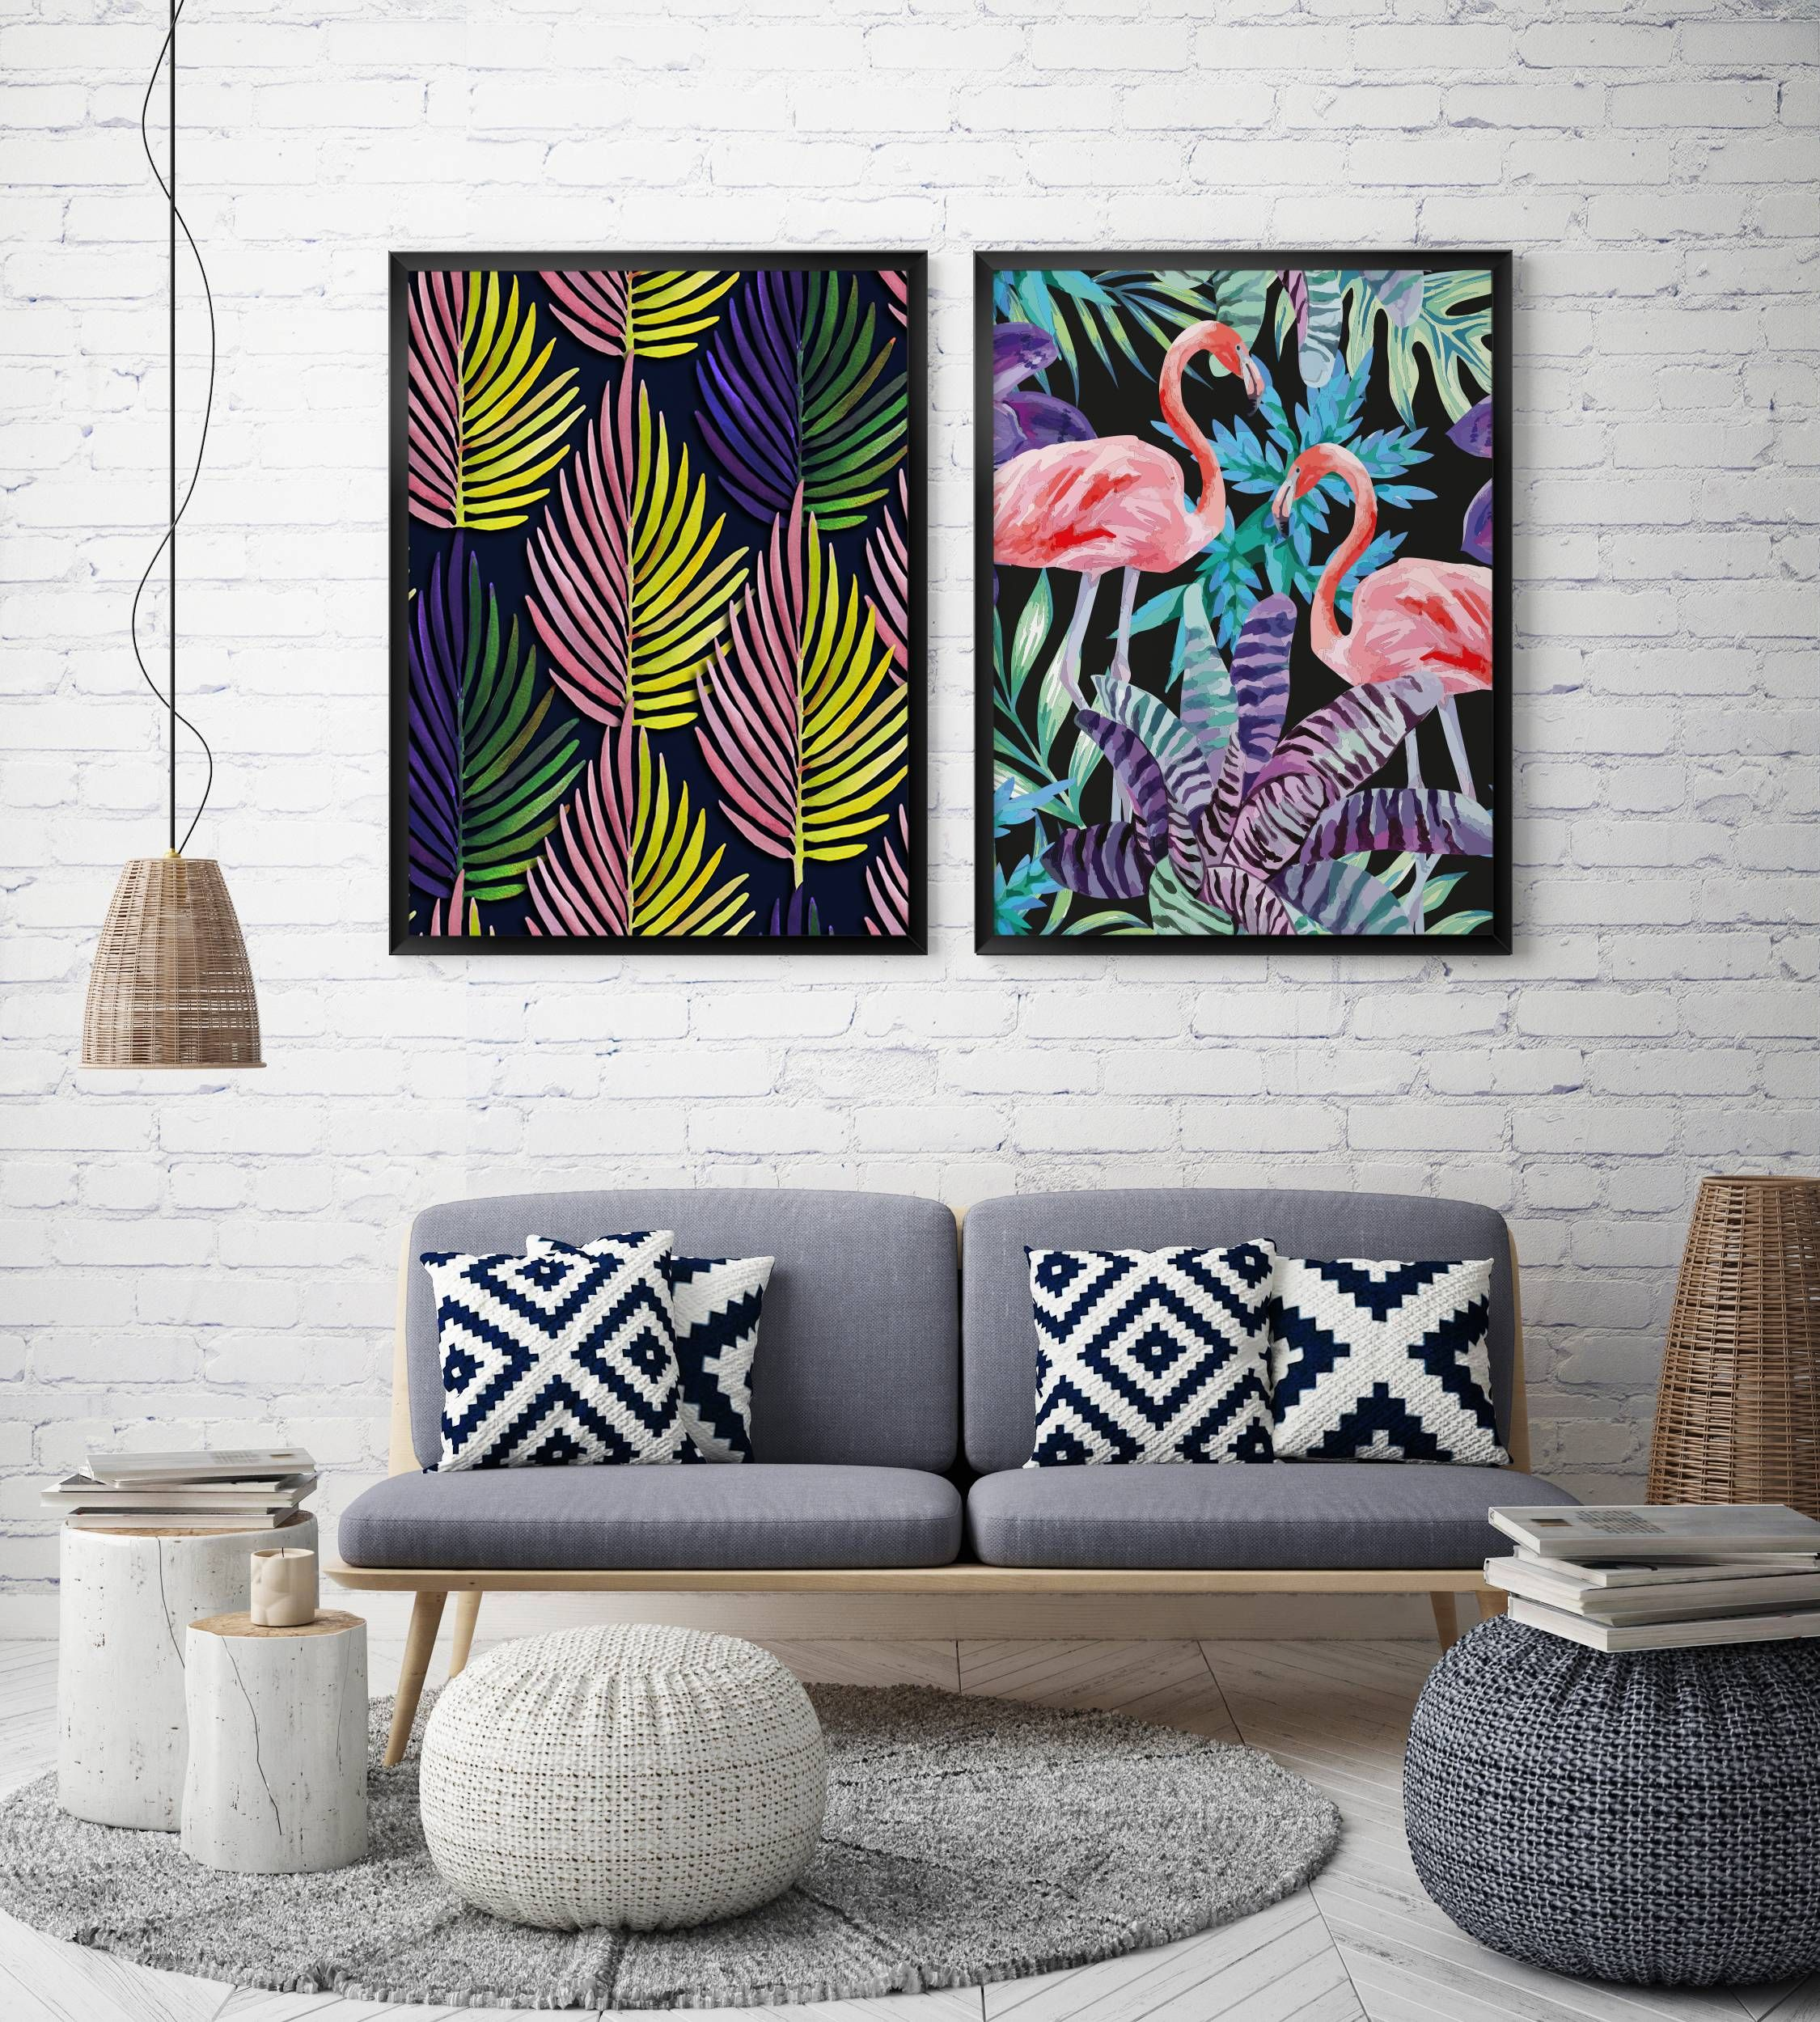 Tropical Vibe Posters Nature Living Room Contemporary Pixers We Live To Change In 2020 Hipster Interior Decor Home Decor #tropical #design #living #room